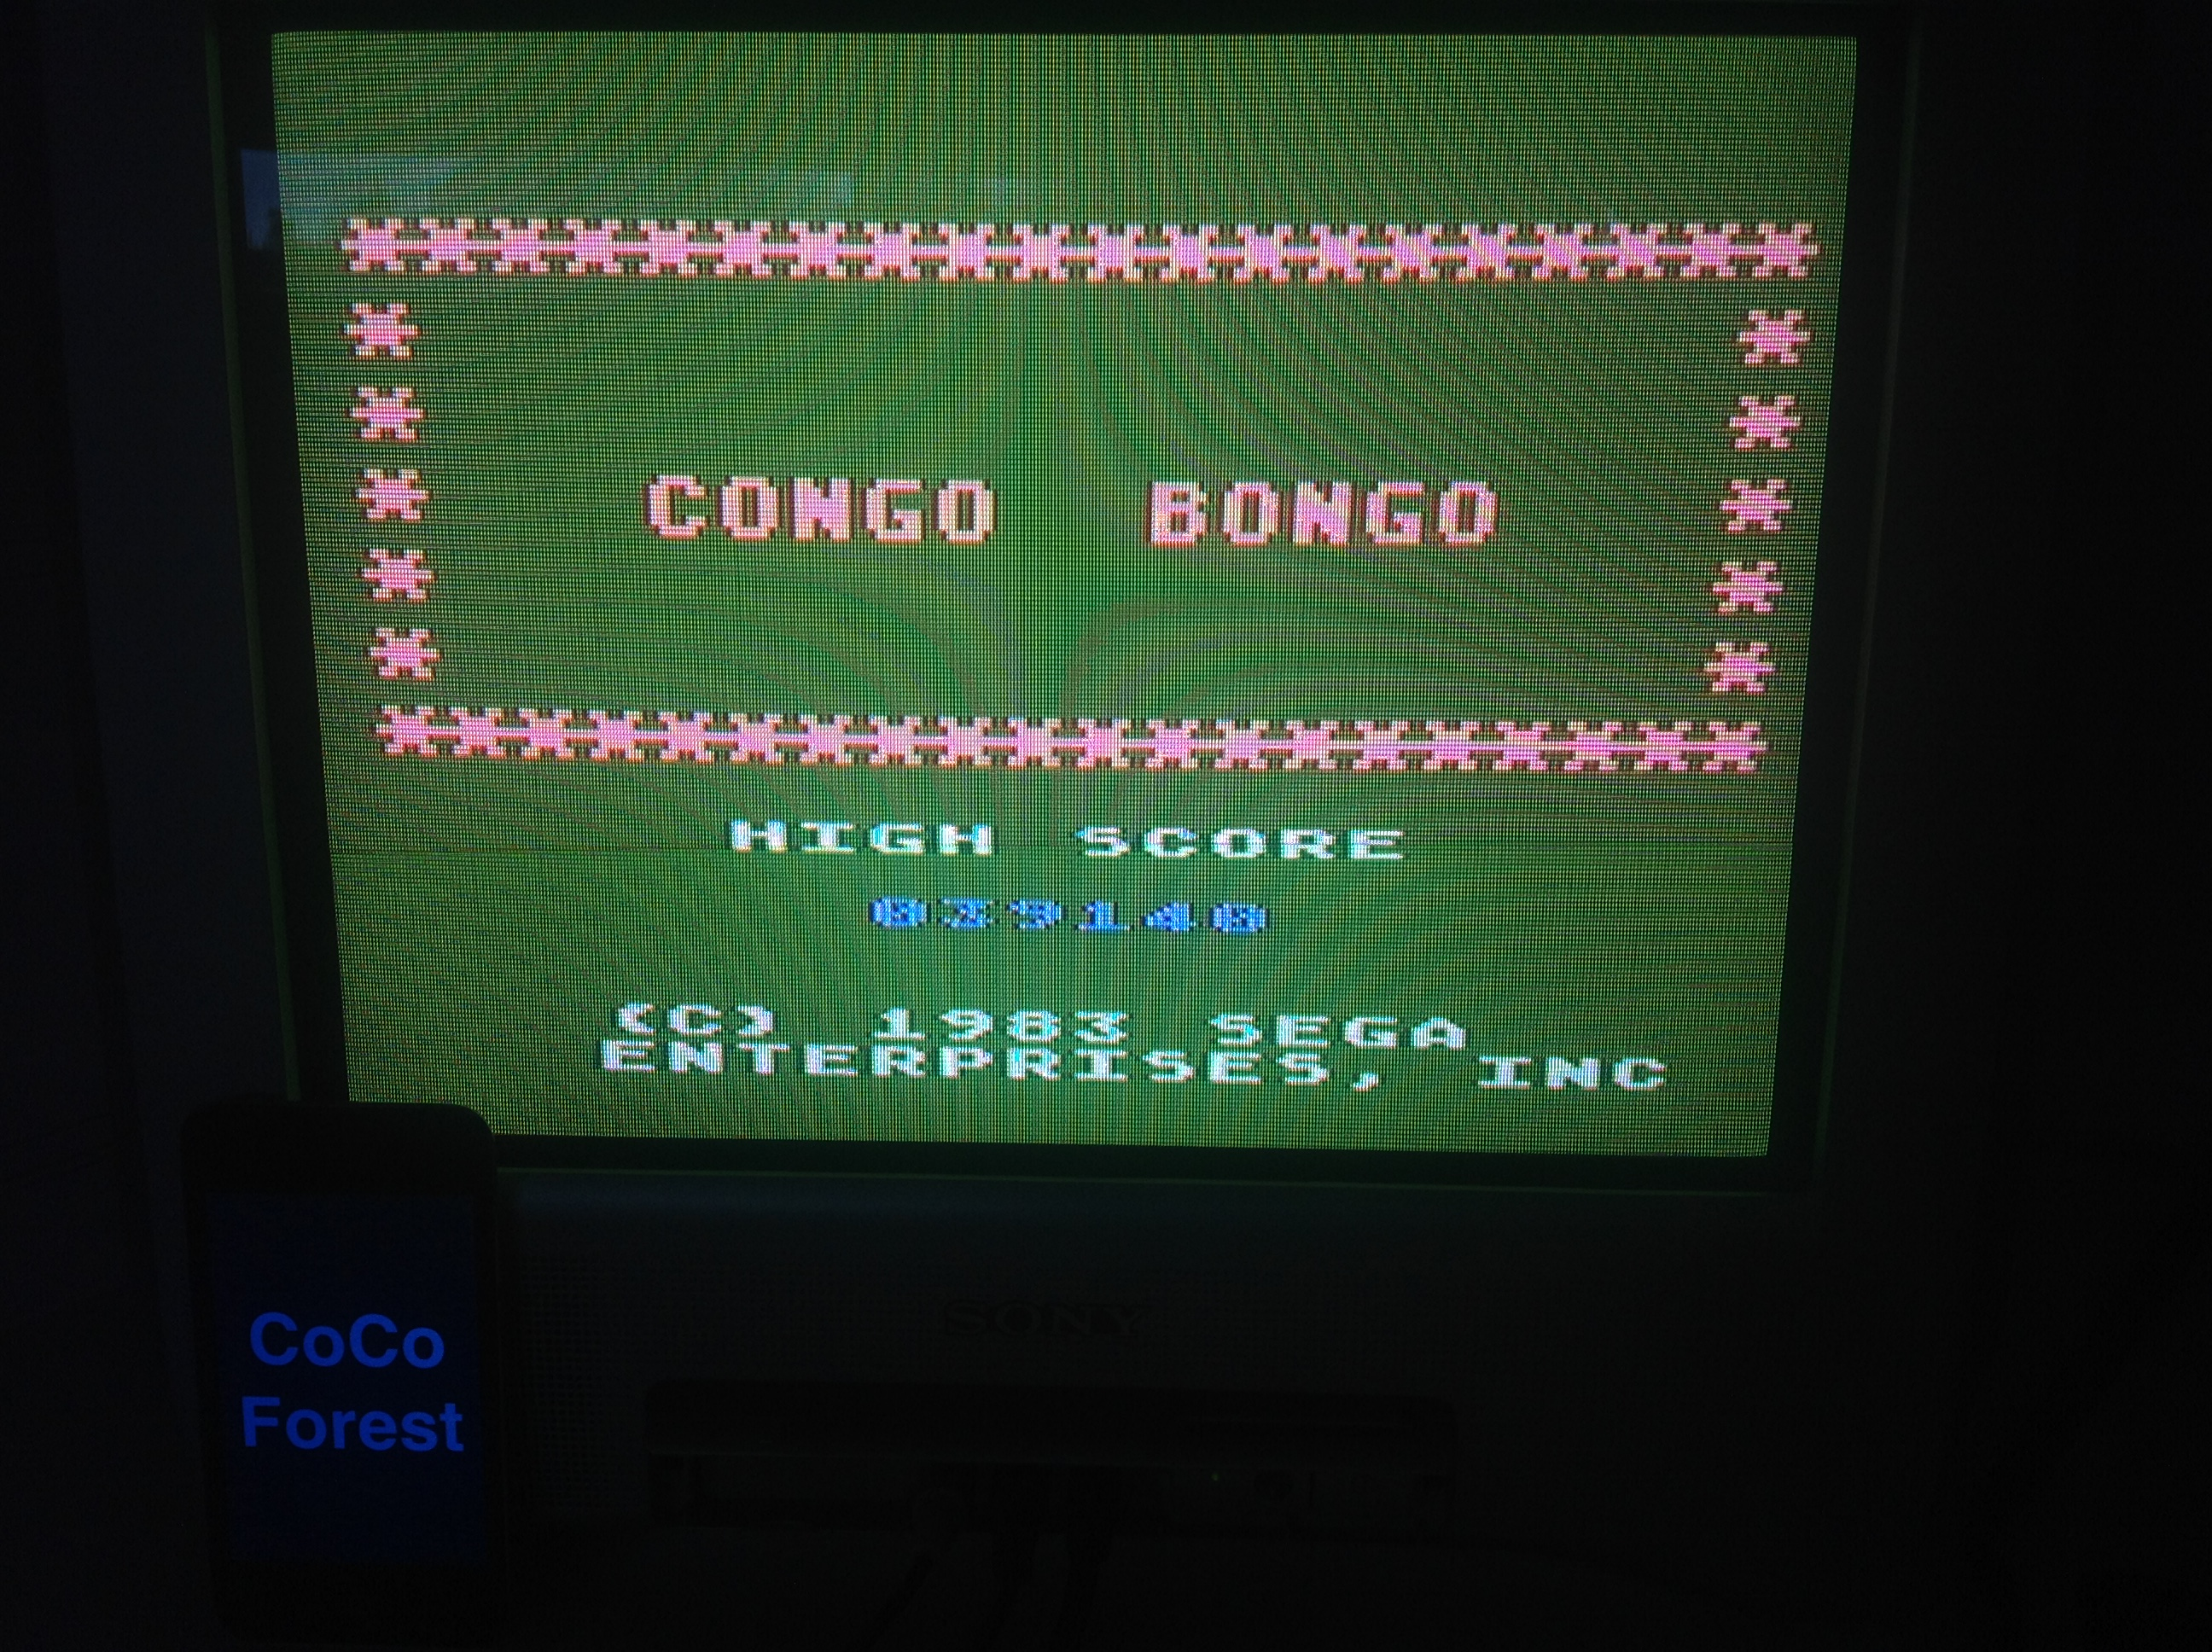 CoCoForest: Congo Bongo (Atari 5200) 39,140 points on 2015-11-12 08:48:30